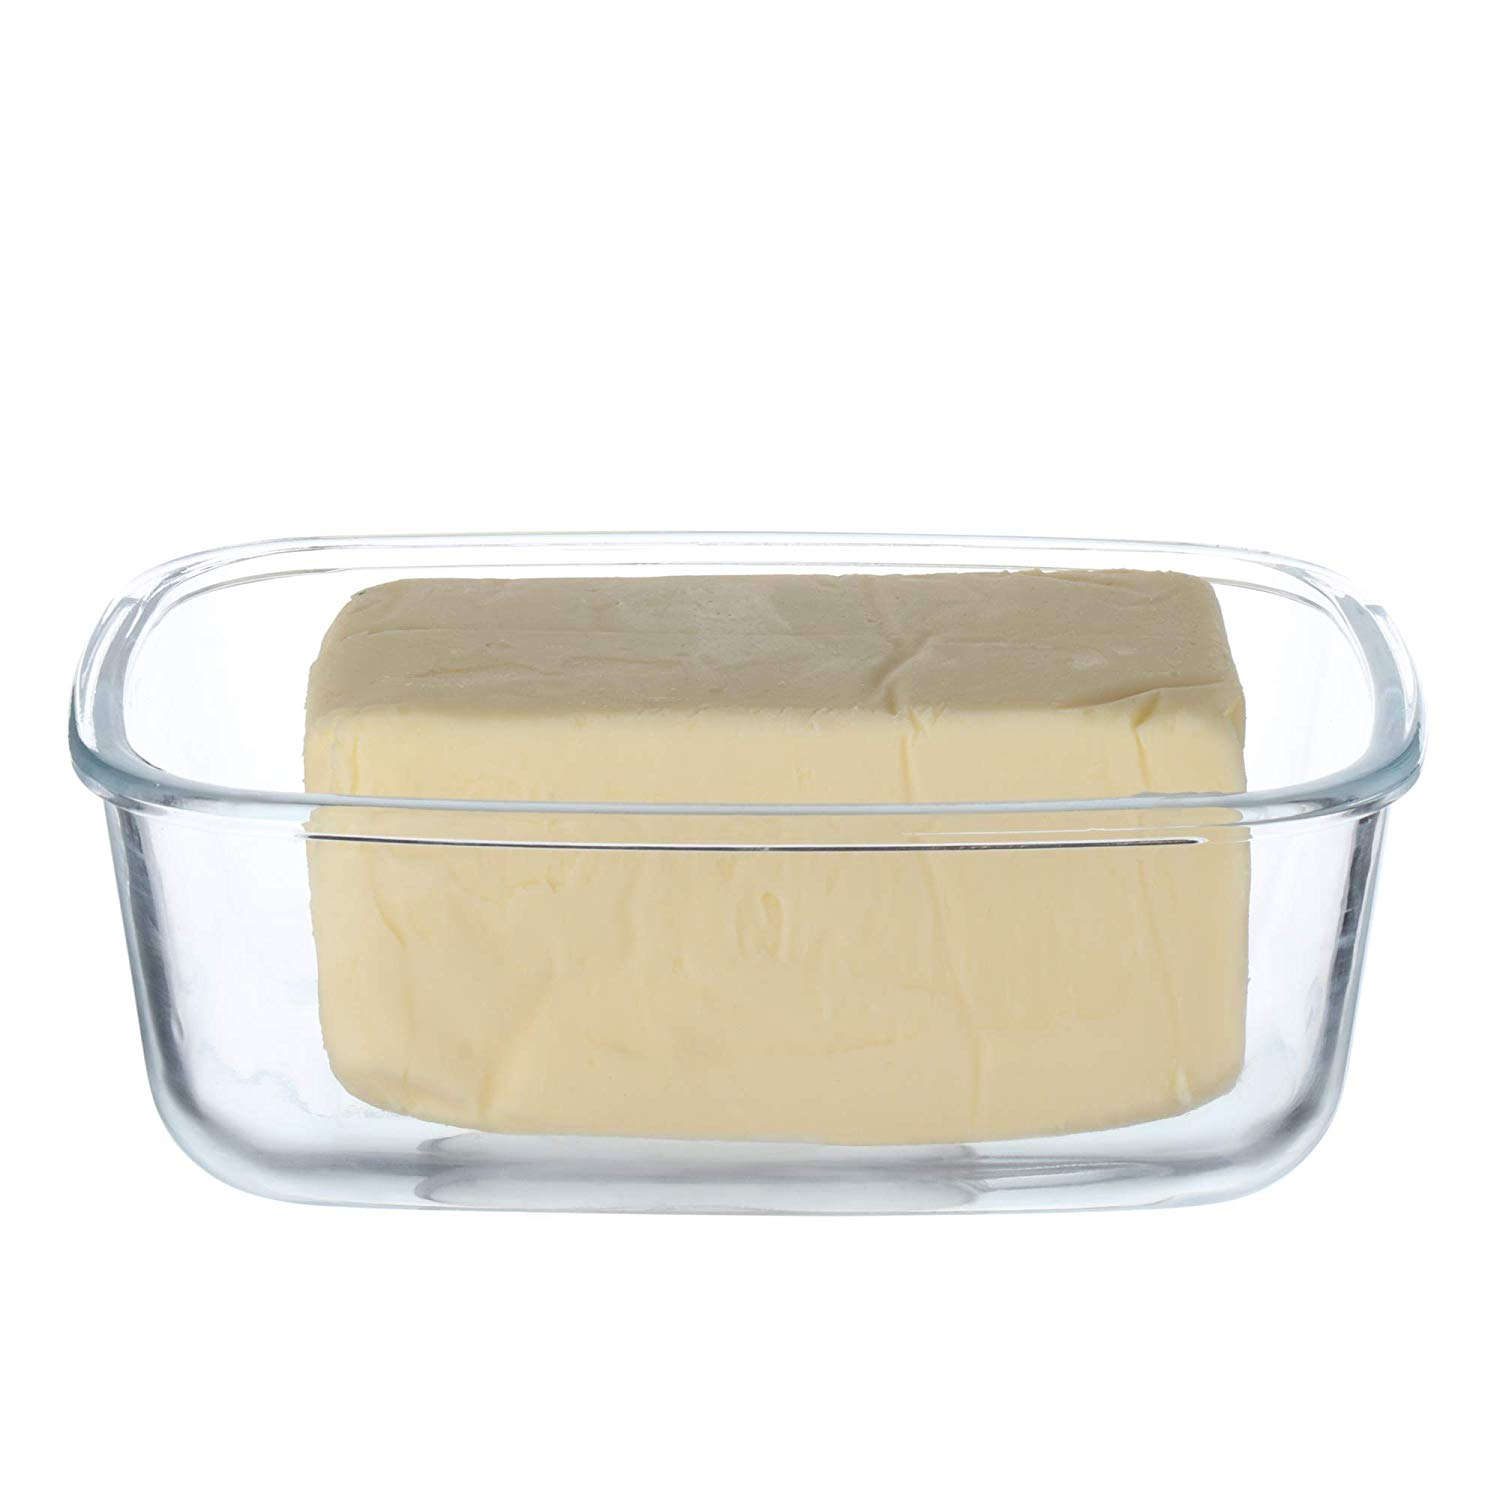 Femora Borosilicate Glass Butter Box Dish, 880 ML, Clear